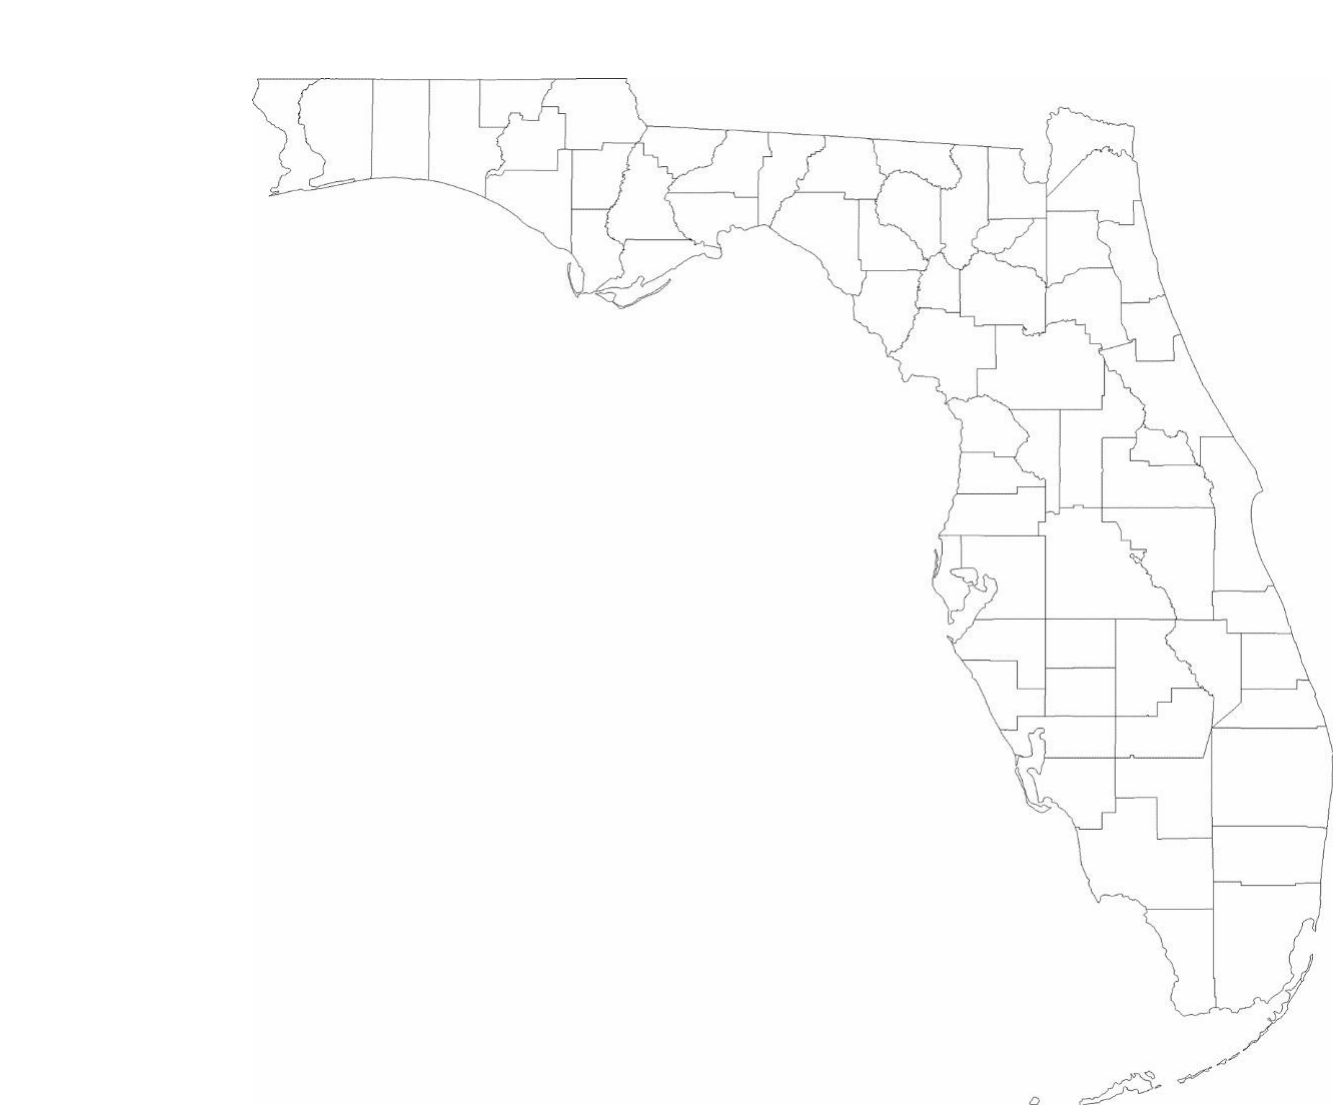 blank florida county map free download